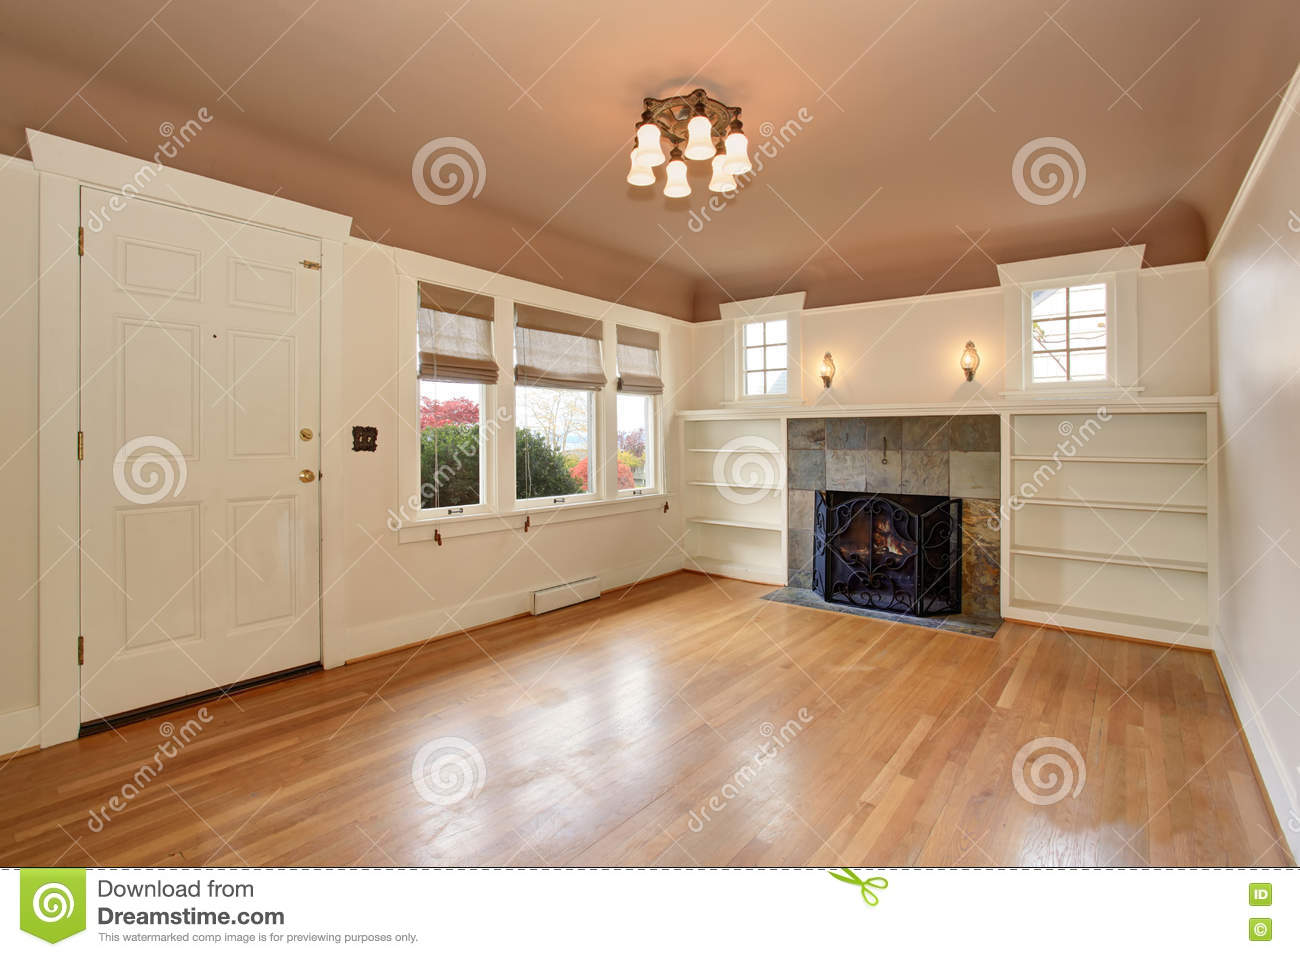 Empty Living Room Interior With Mocha Ceiling And Tile Trim ...